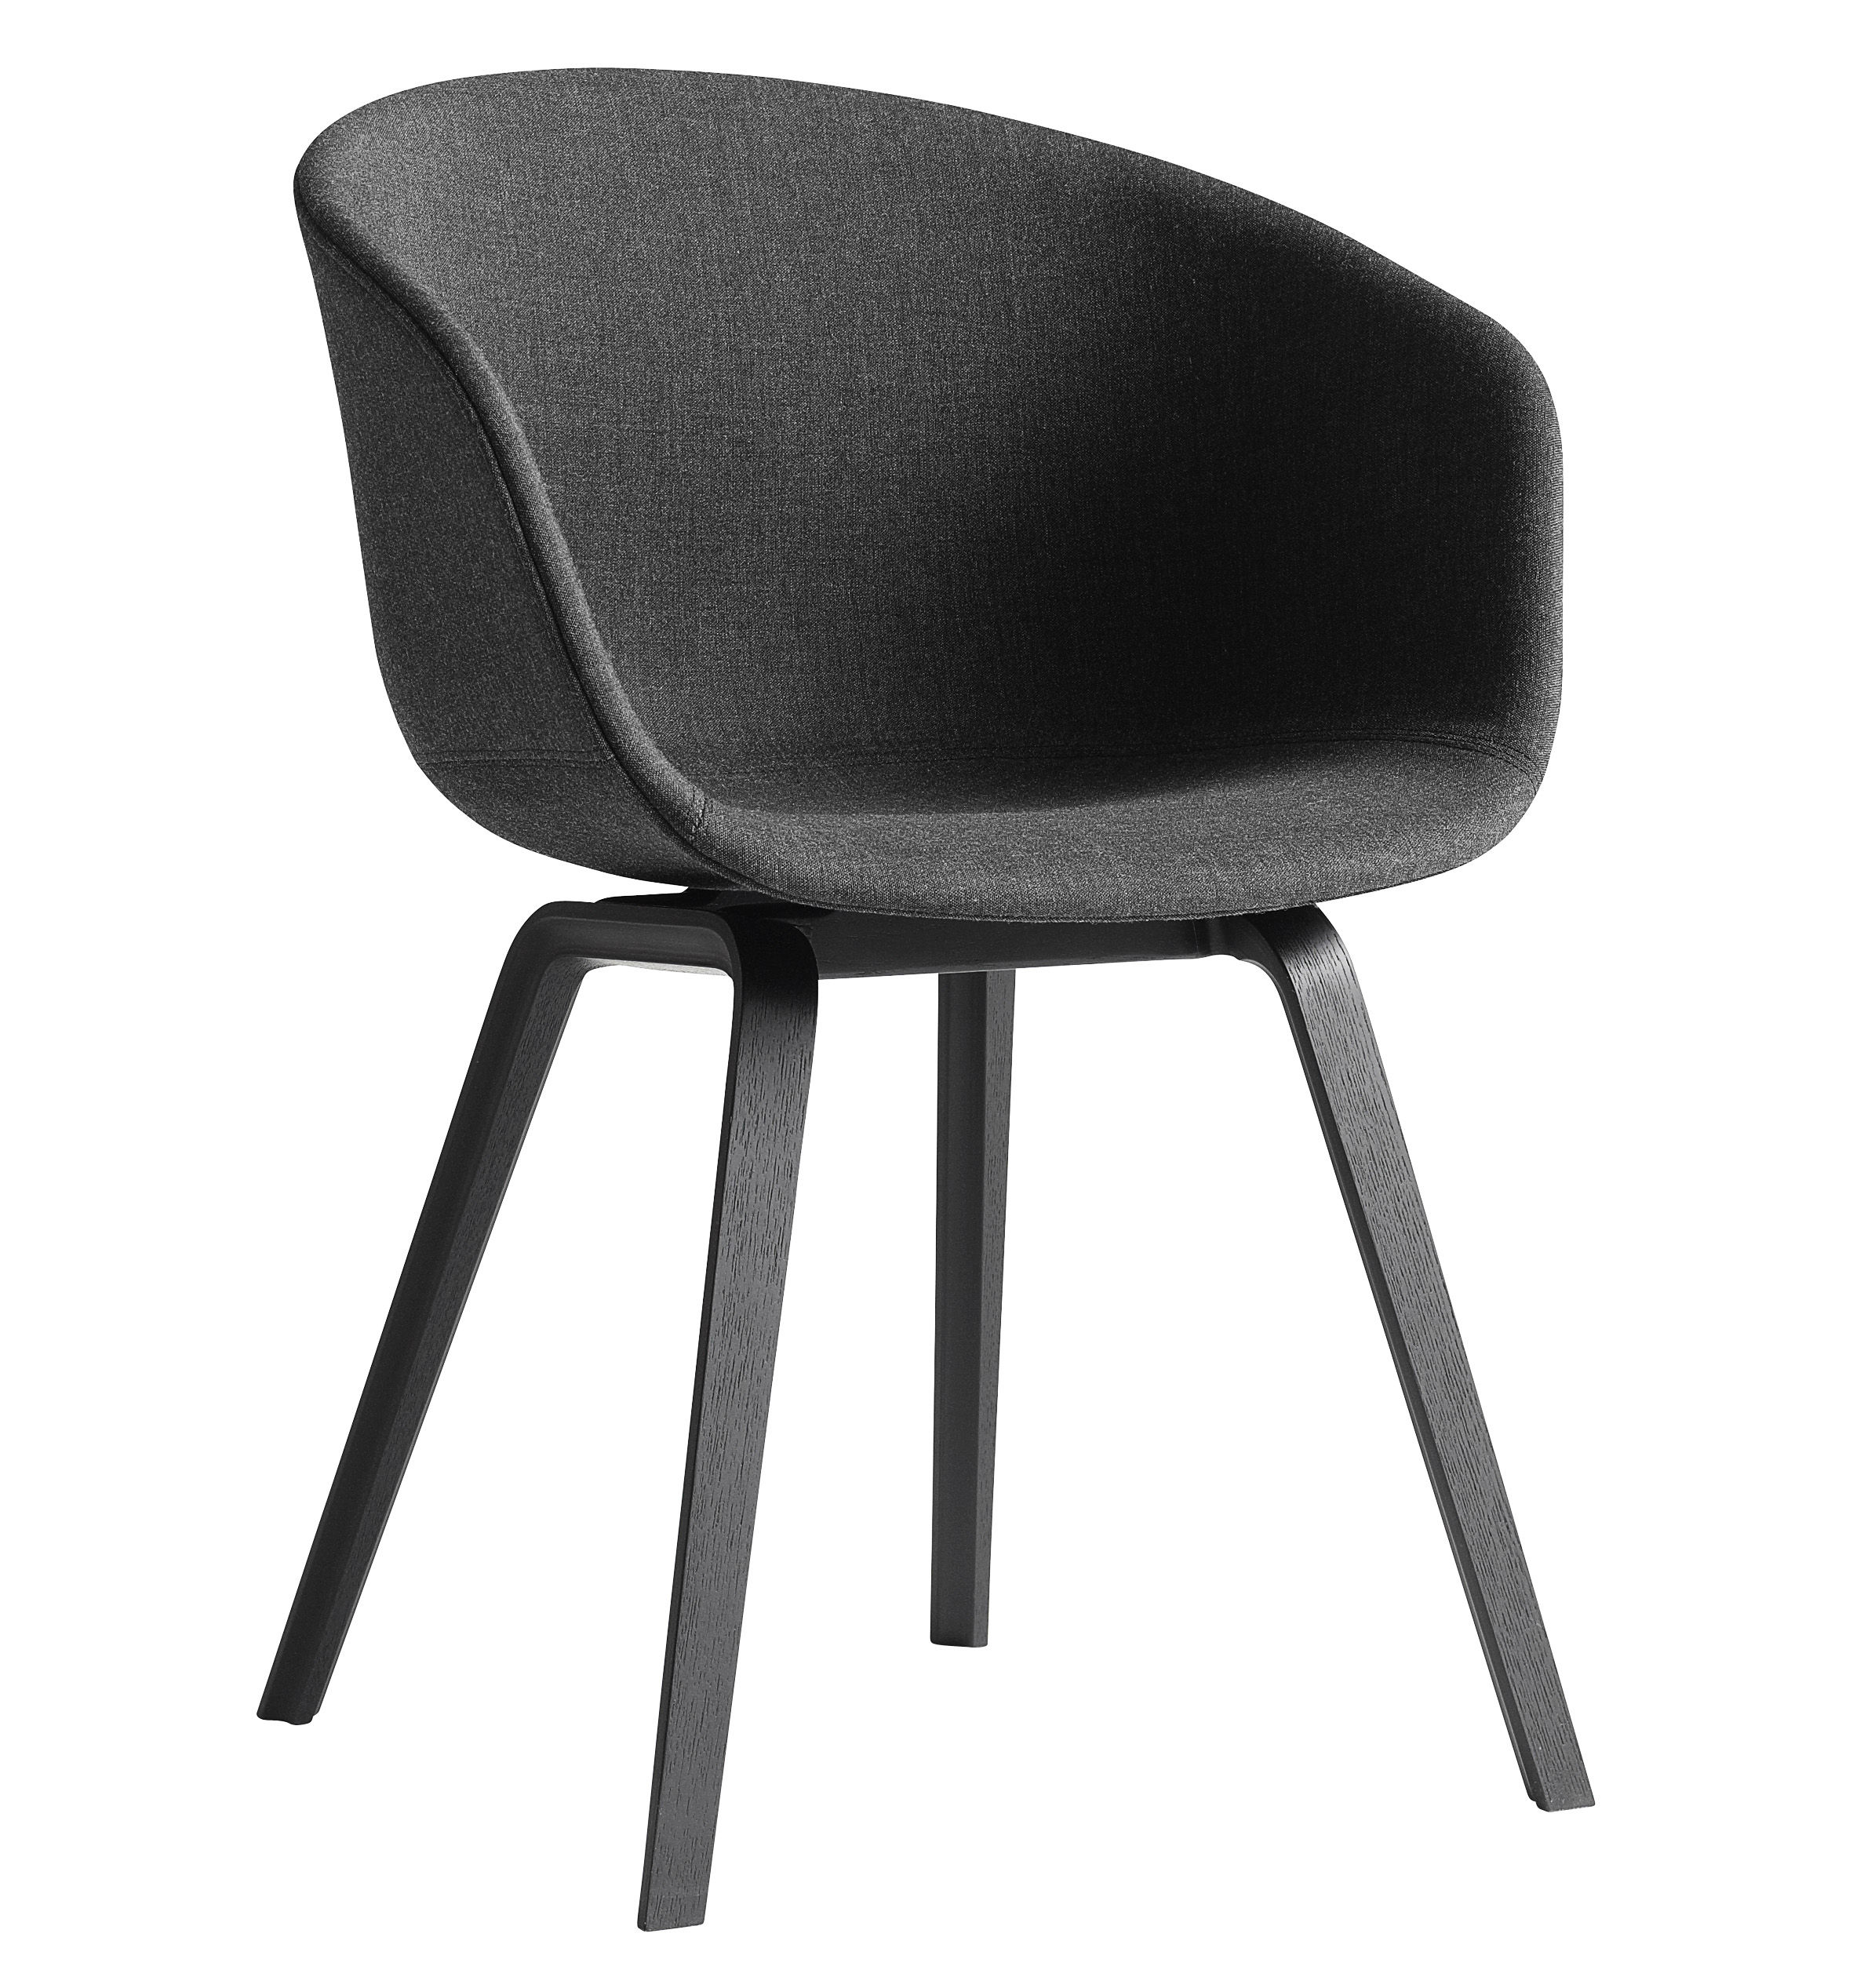 Furniture - Chairs - About a chair AAC23 Padded armchair - 4 legs /Full fabric by Hay - Dark grey / Black ash feet - Fabric, Foam, Polypropylene, Tinted oak plywood